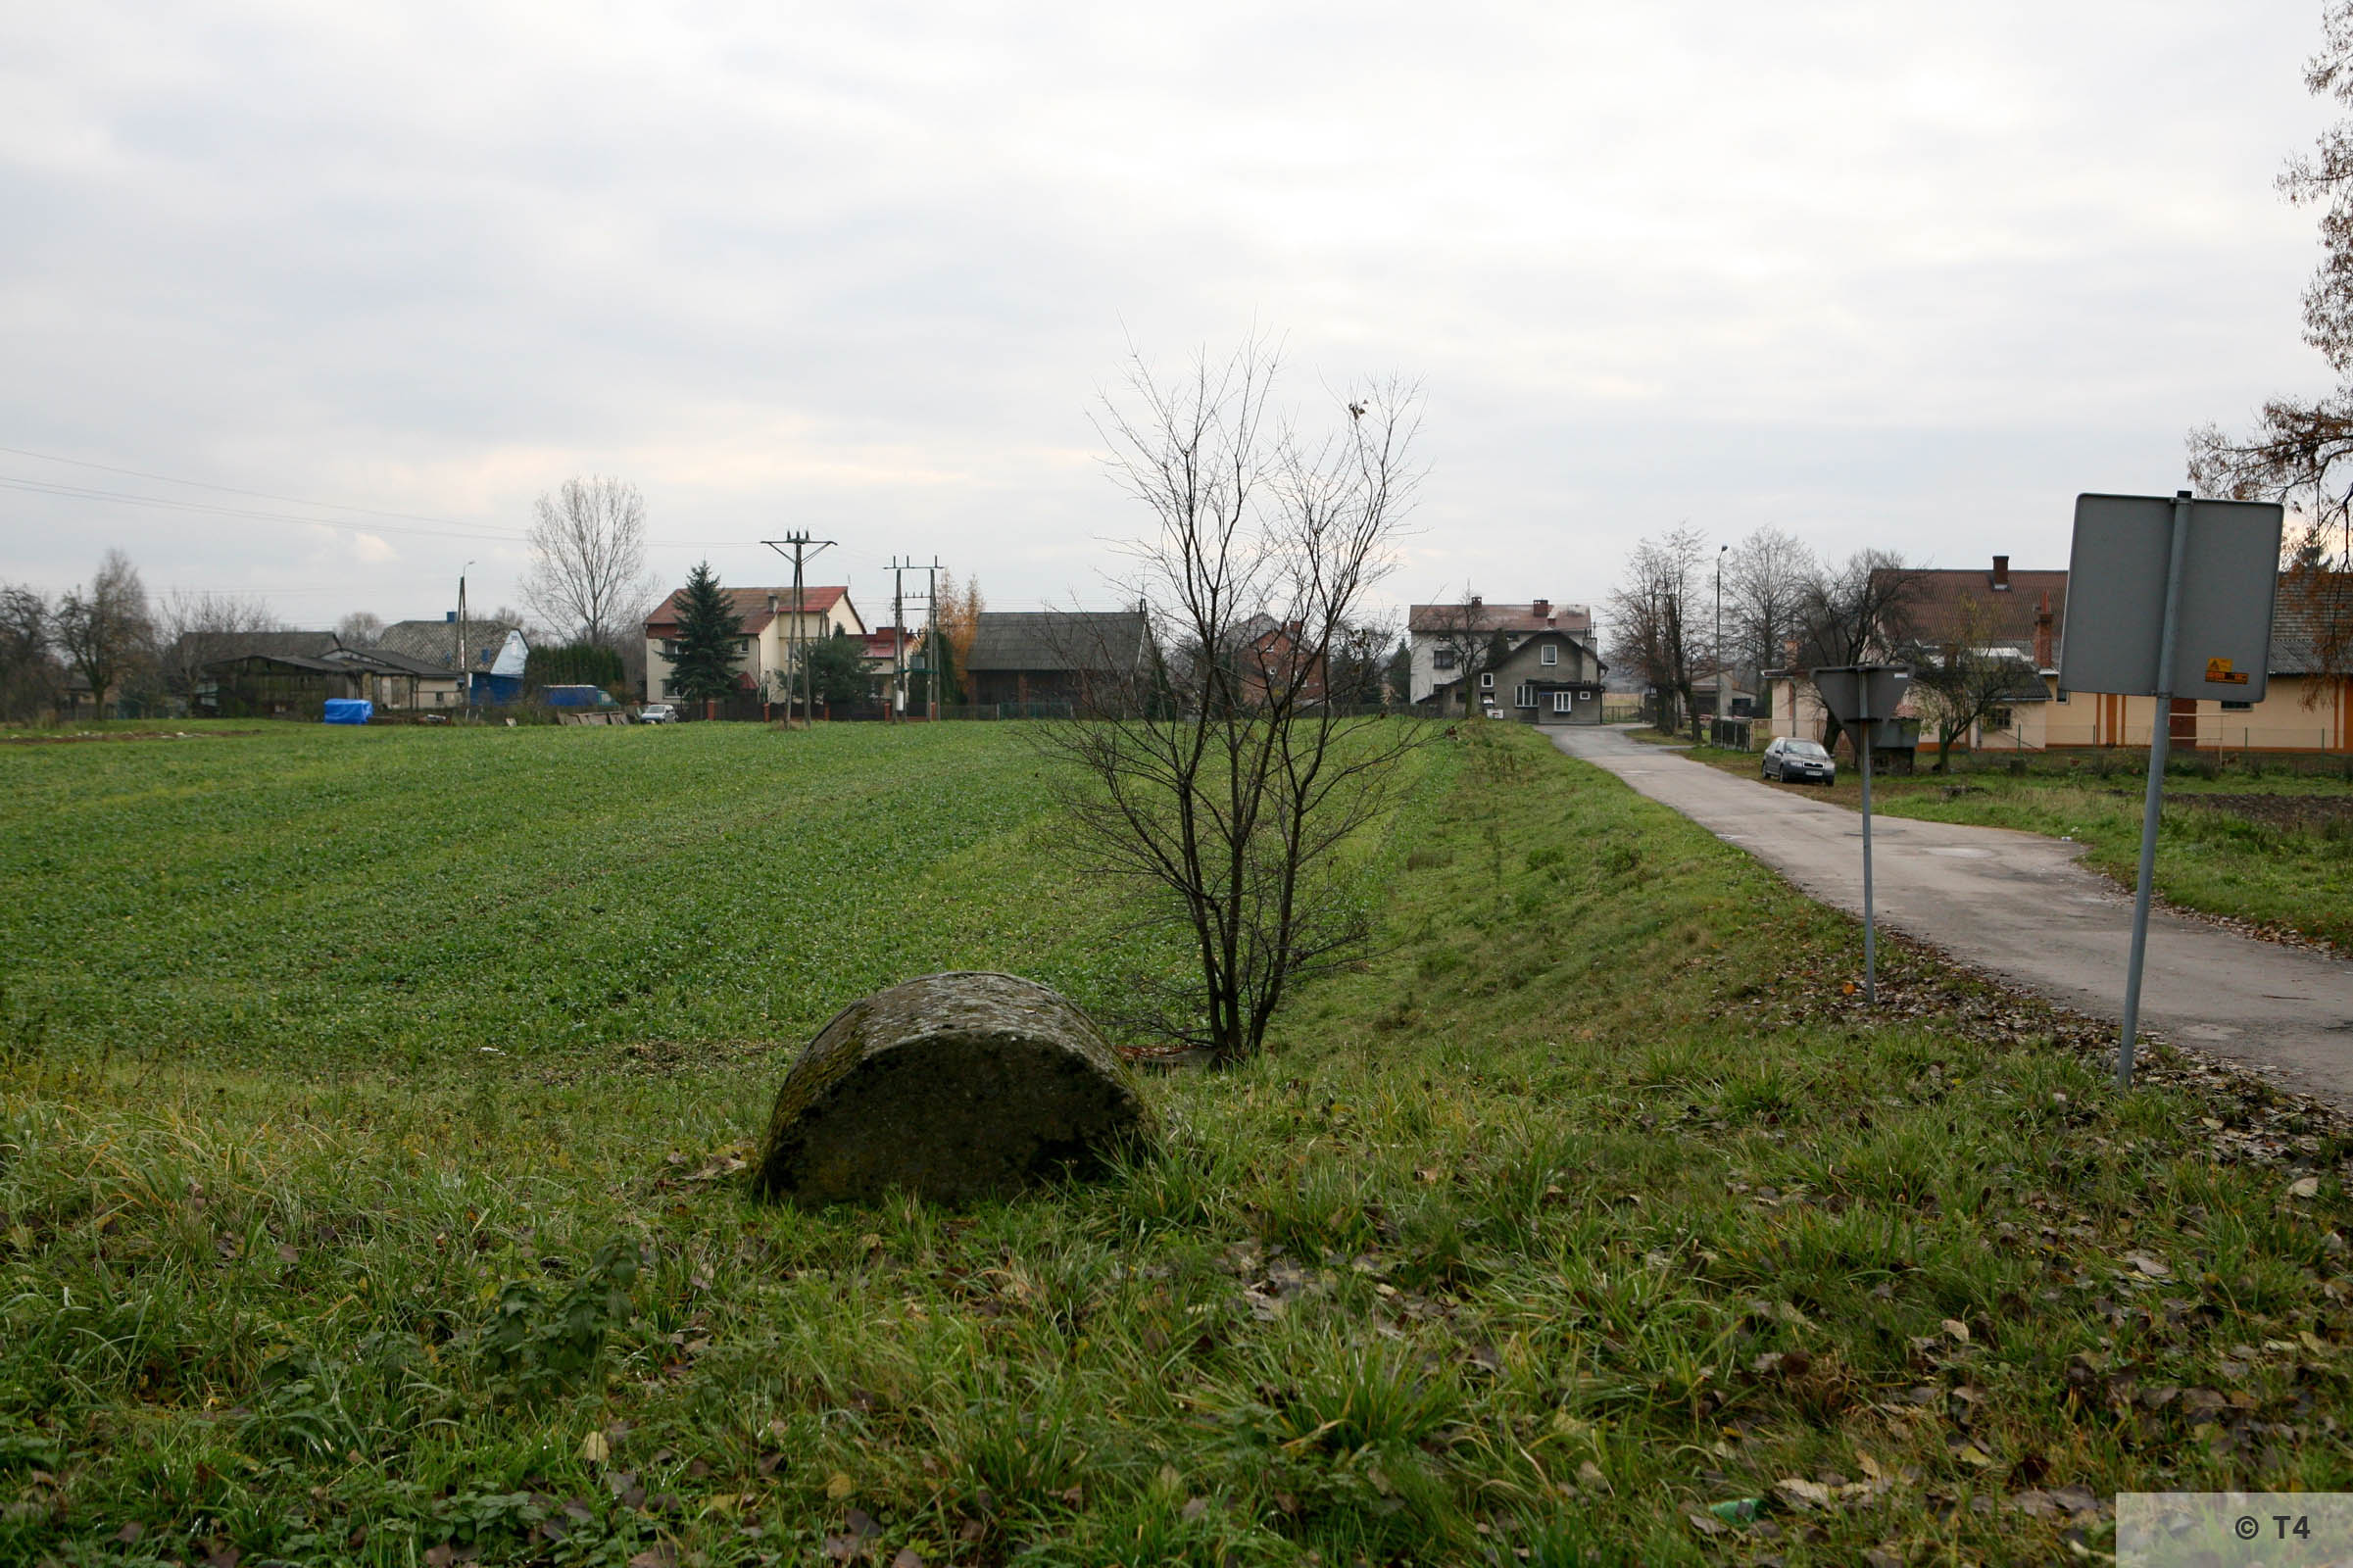 View towards the main entrance gate of the former camp and Blockführerstube. Area of Erziehungslager on the left. SS barrack on the right. 2008 T4 3353